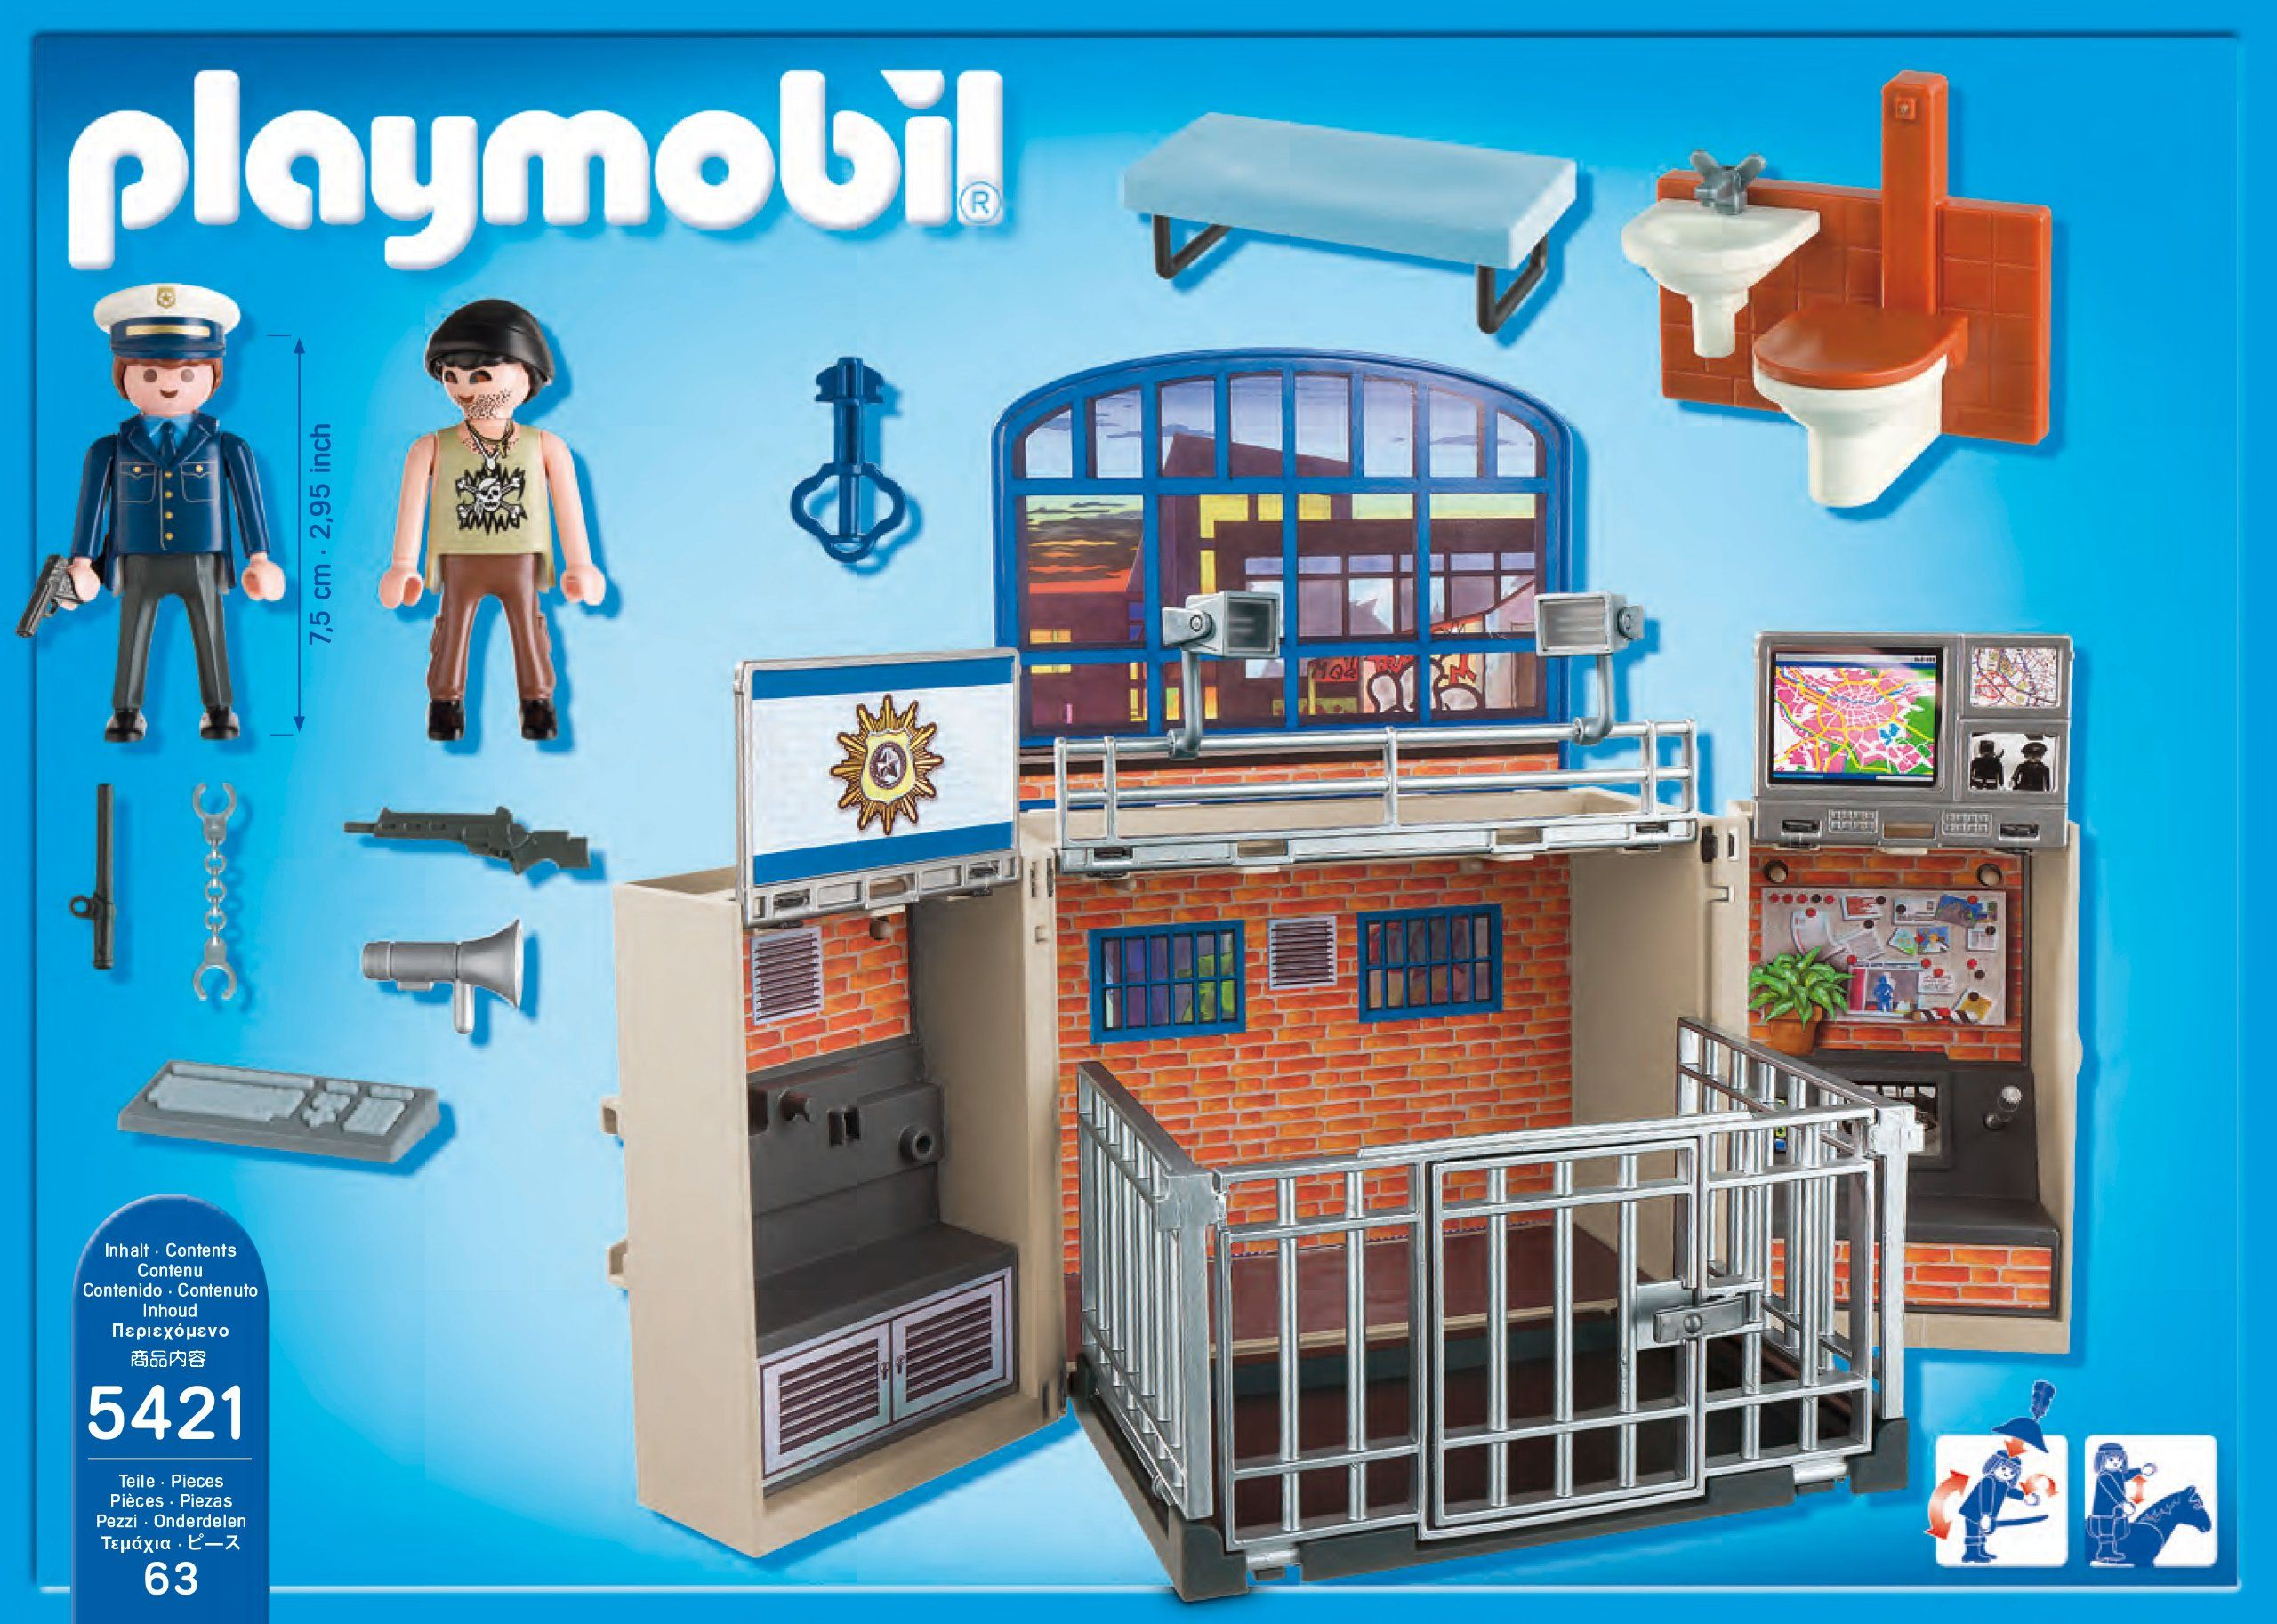 15 eur amazon.de:playmobil 5421 - pop game box, police station, Badezimmer ideen